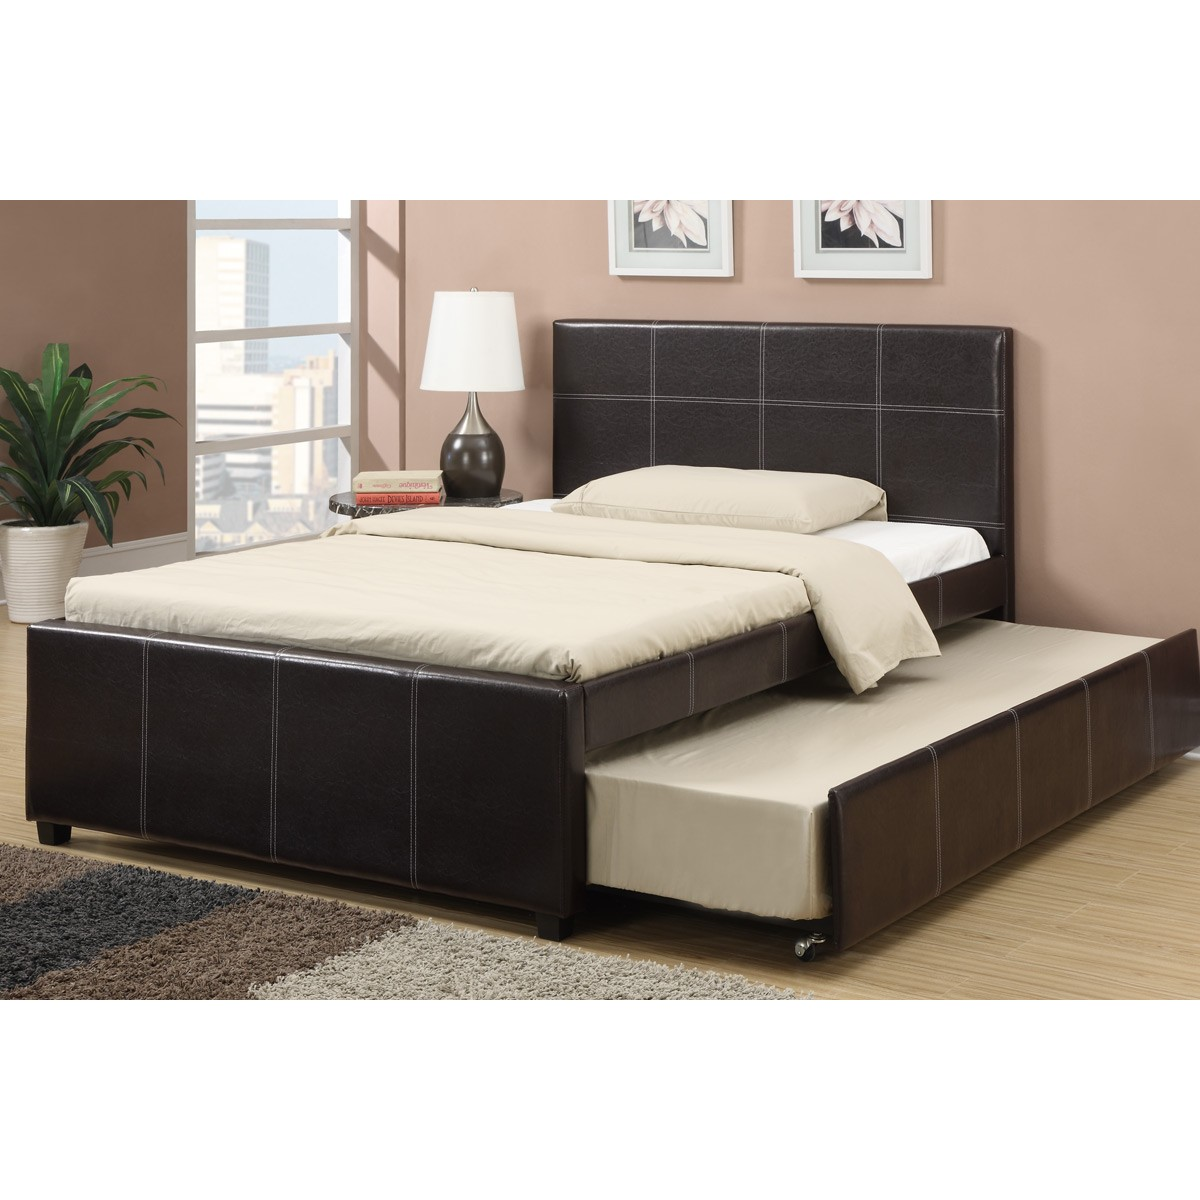 Espresso Faux Leather Full Size Bed With Twin Size Trundle Bed Slat Kits Included Oc